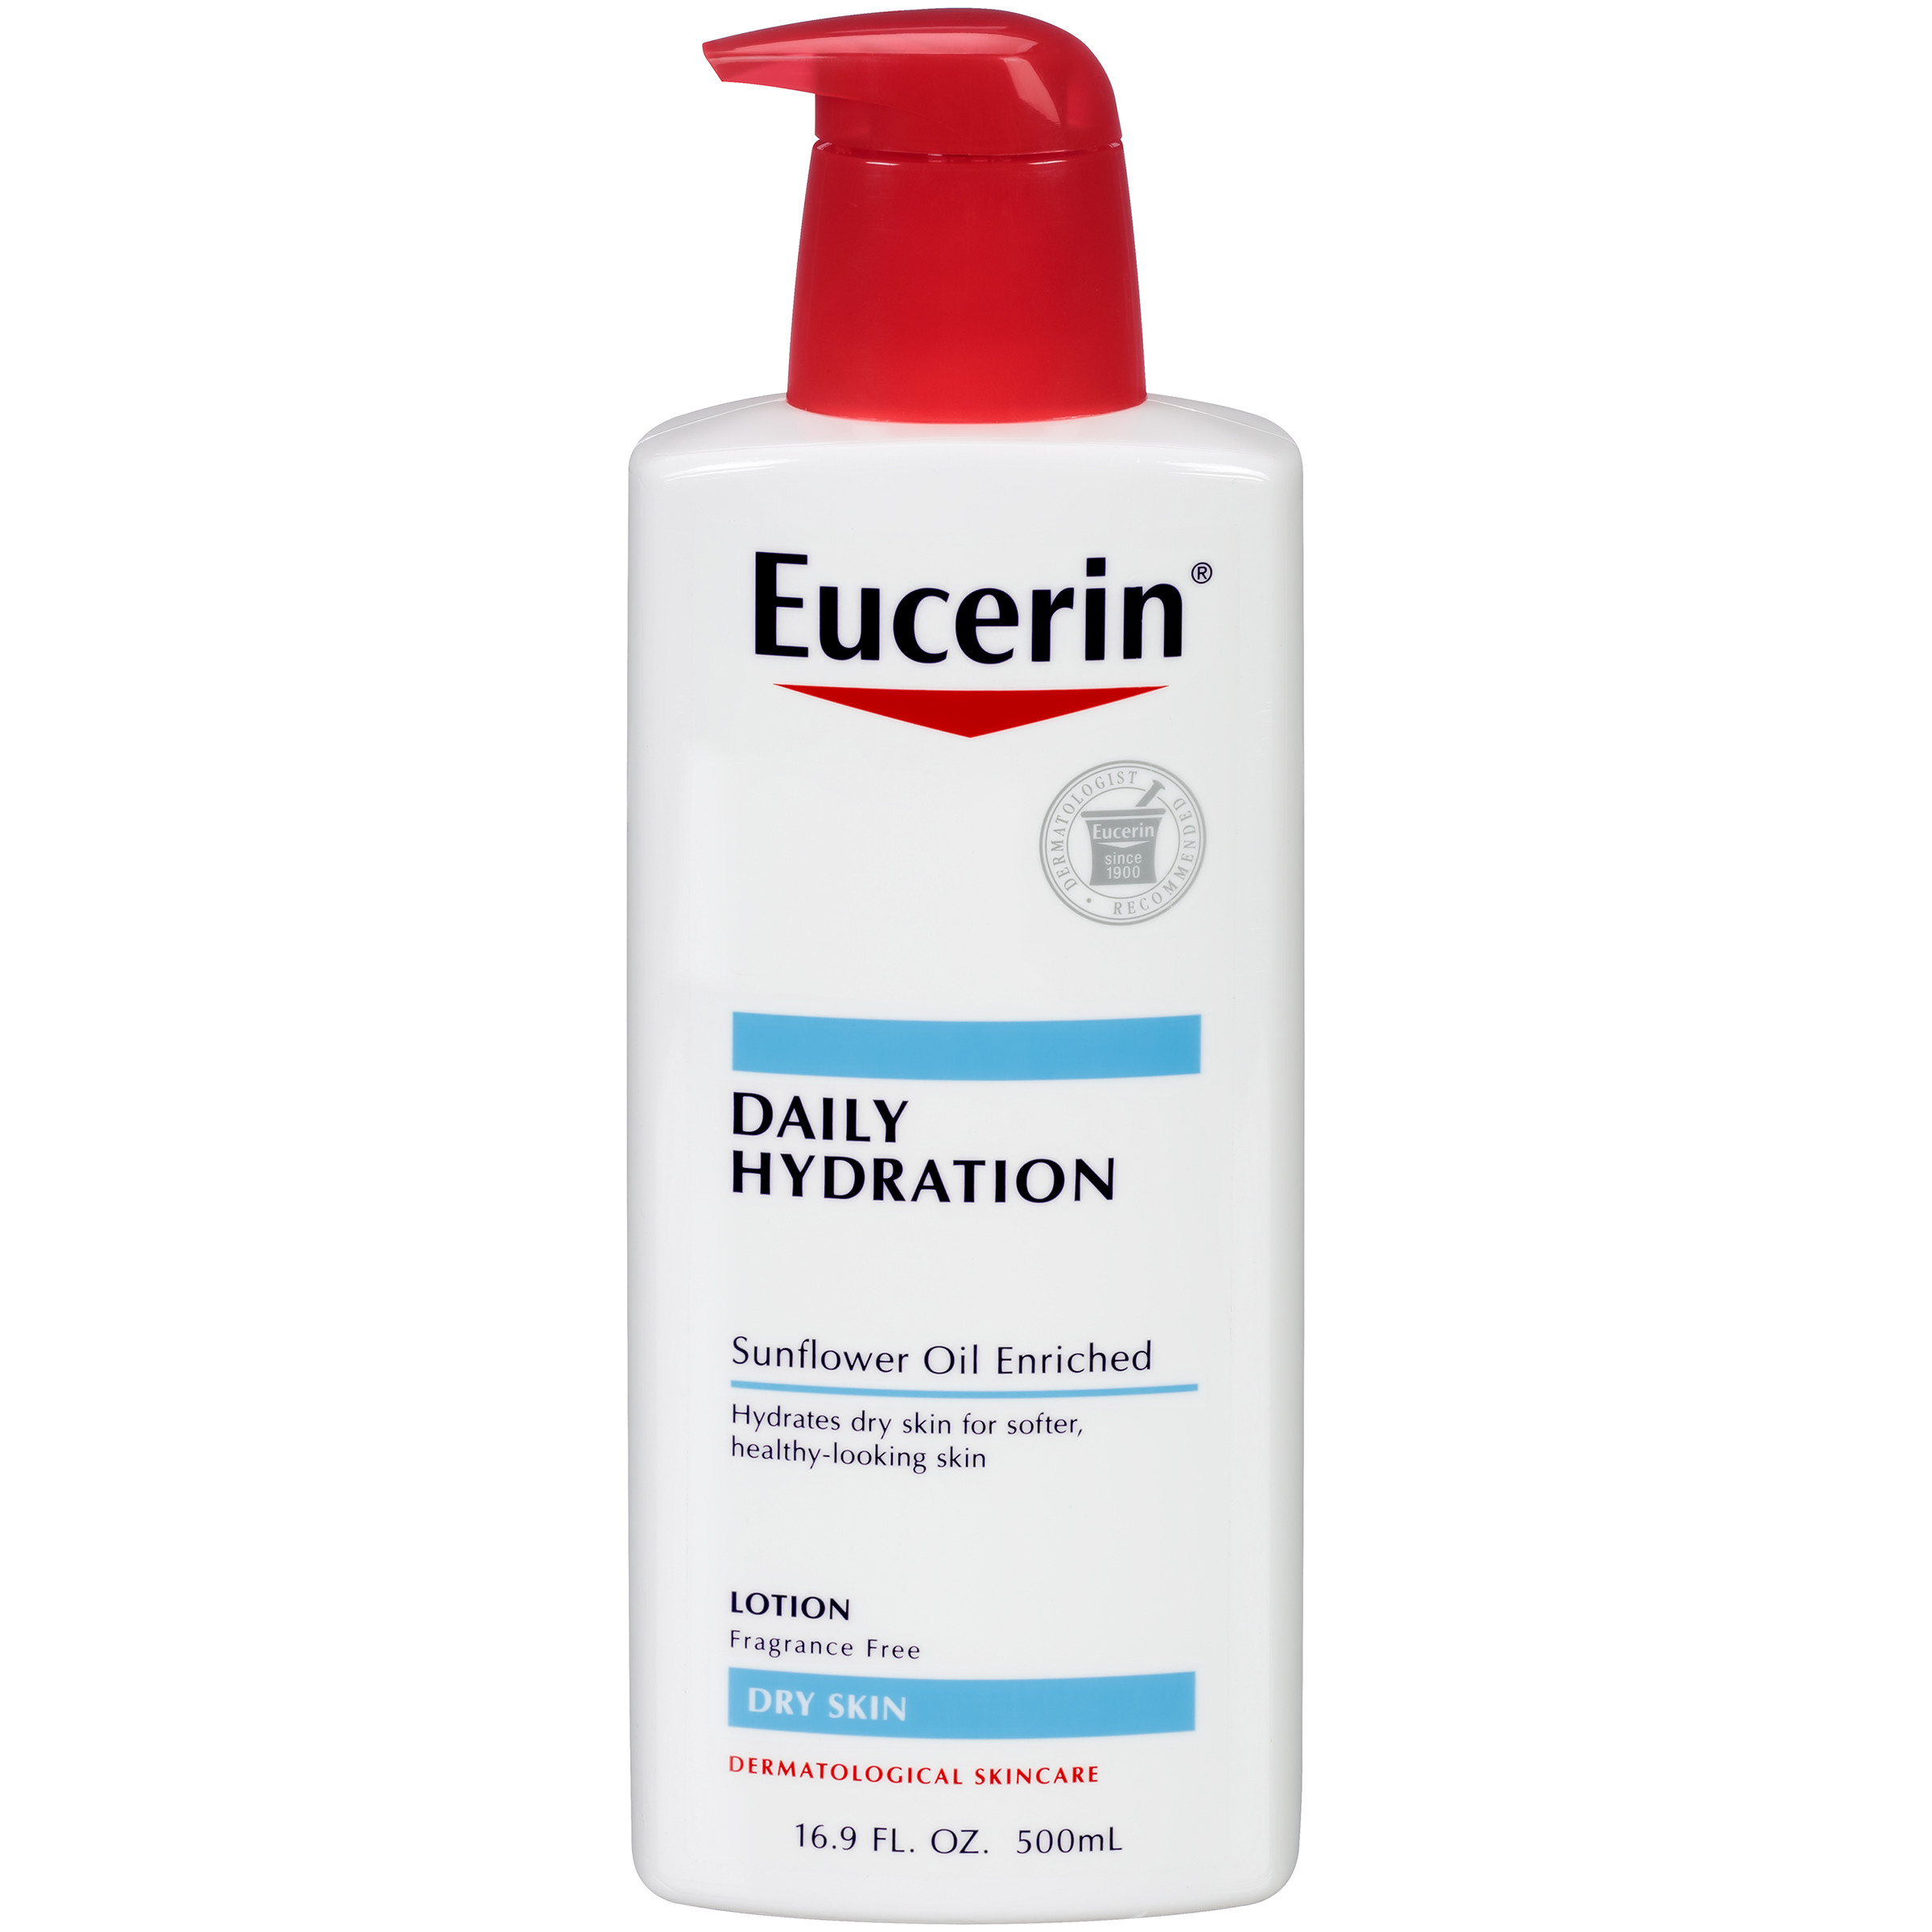 Eucerin Daily Hydration Body Lotion 16.9 oz.